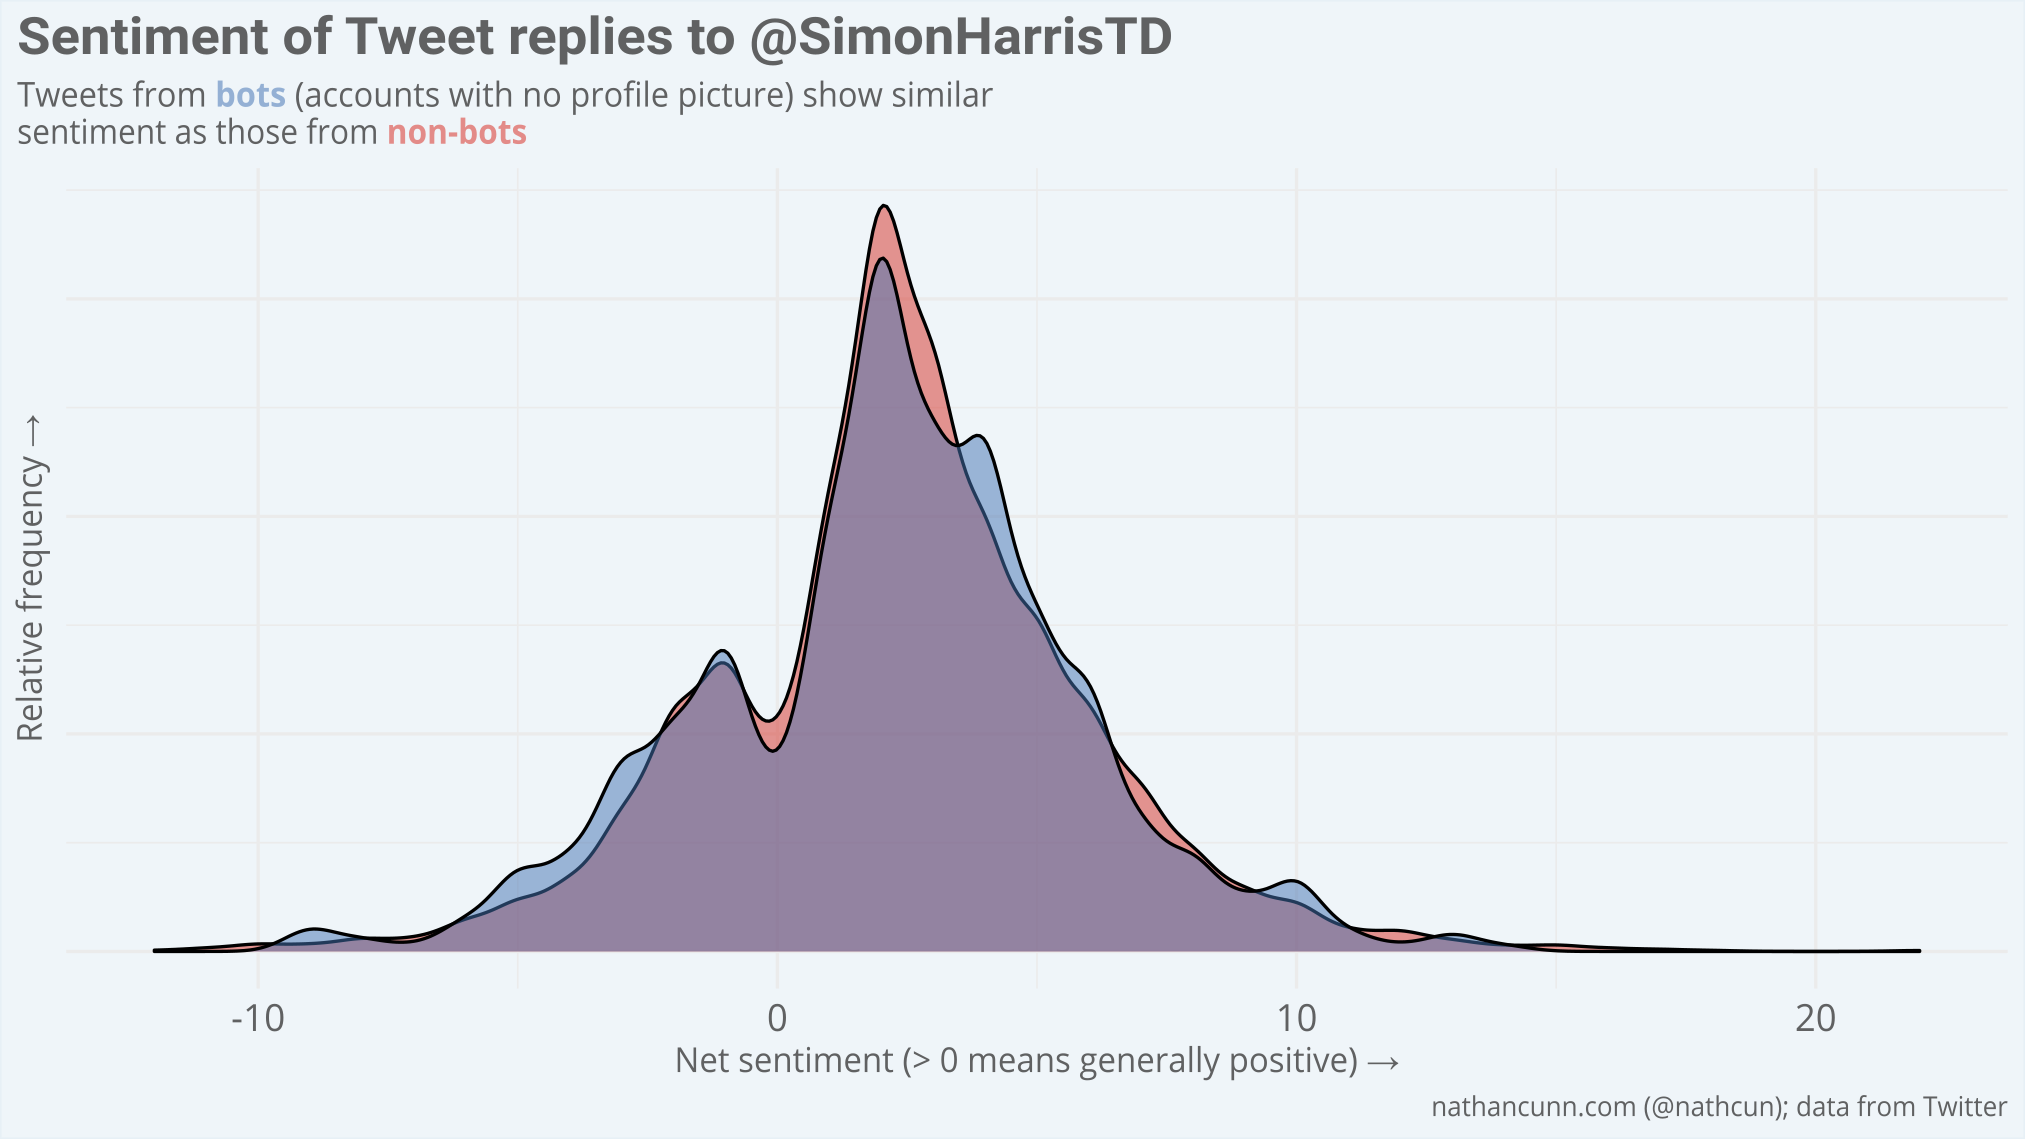 A density plot of the sentiment score of tweet replies to @SimonHarrisTD broken down by supposed bots and non-bots where bots are identified by having no profile image. No difference is observed between the two groups.